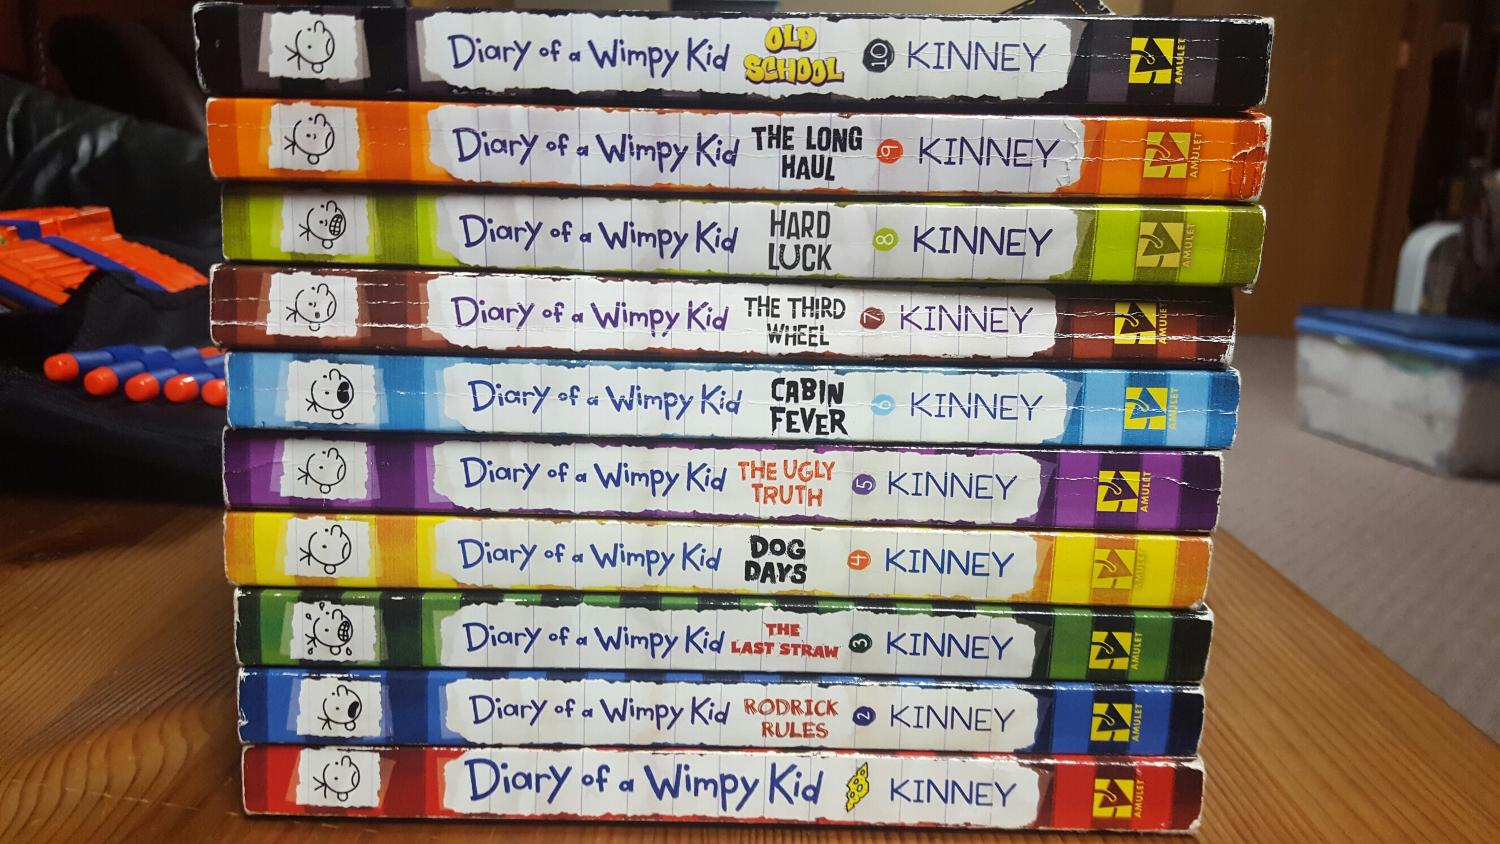 the diary of a wimpy kid book 1 pdf